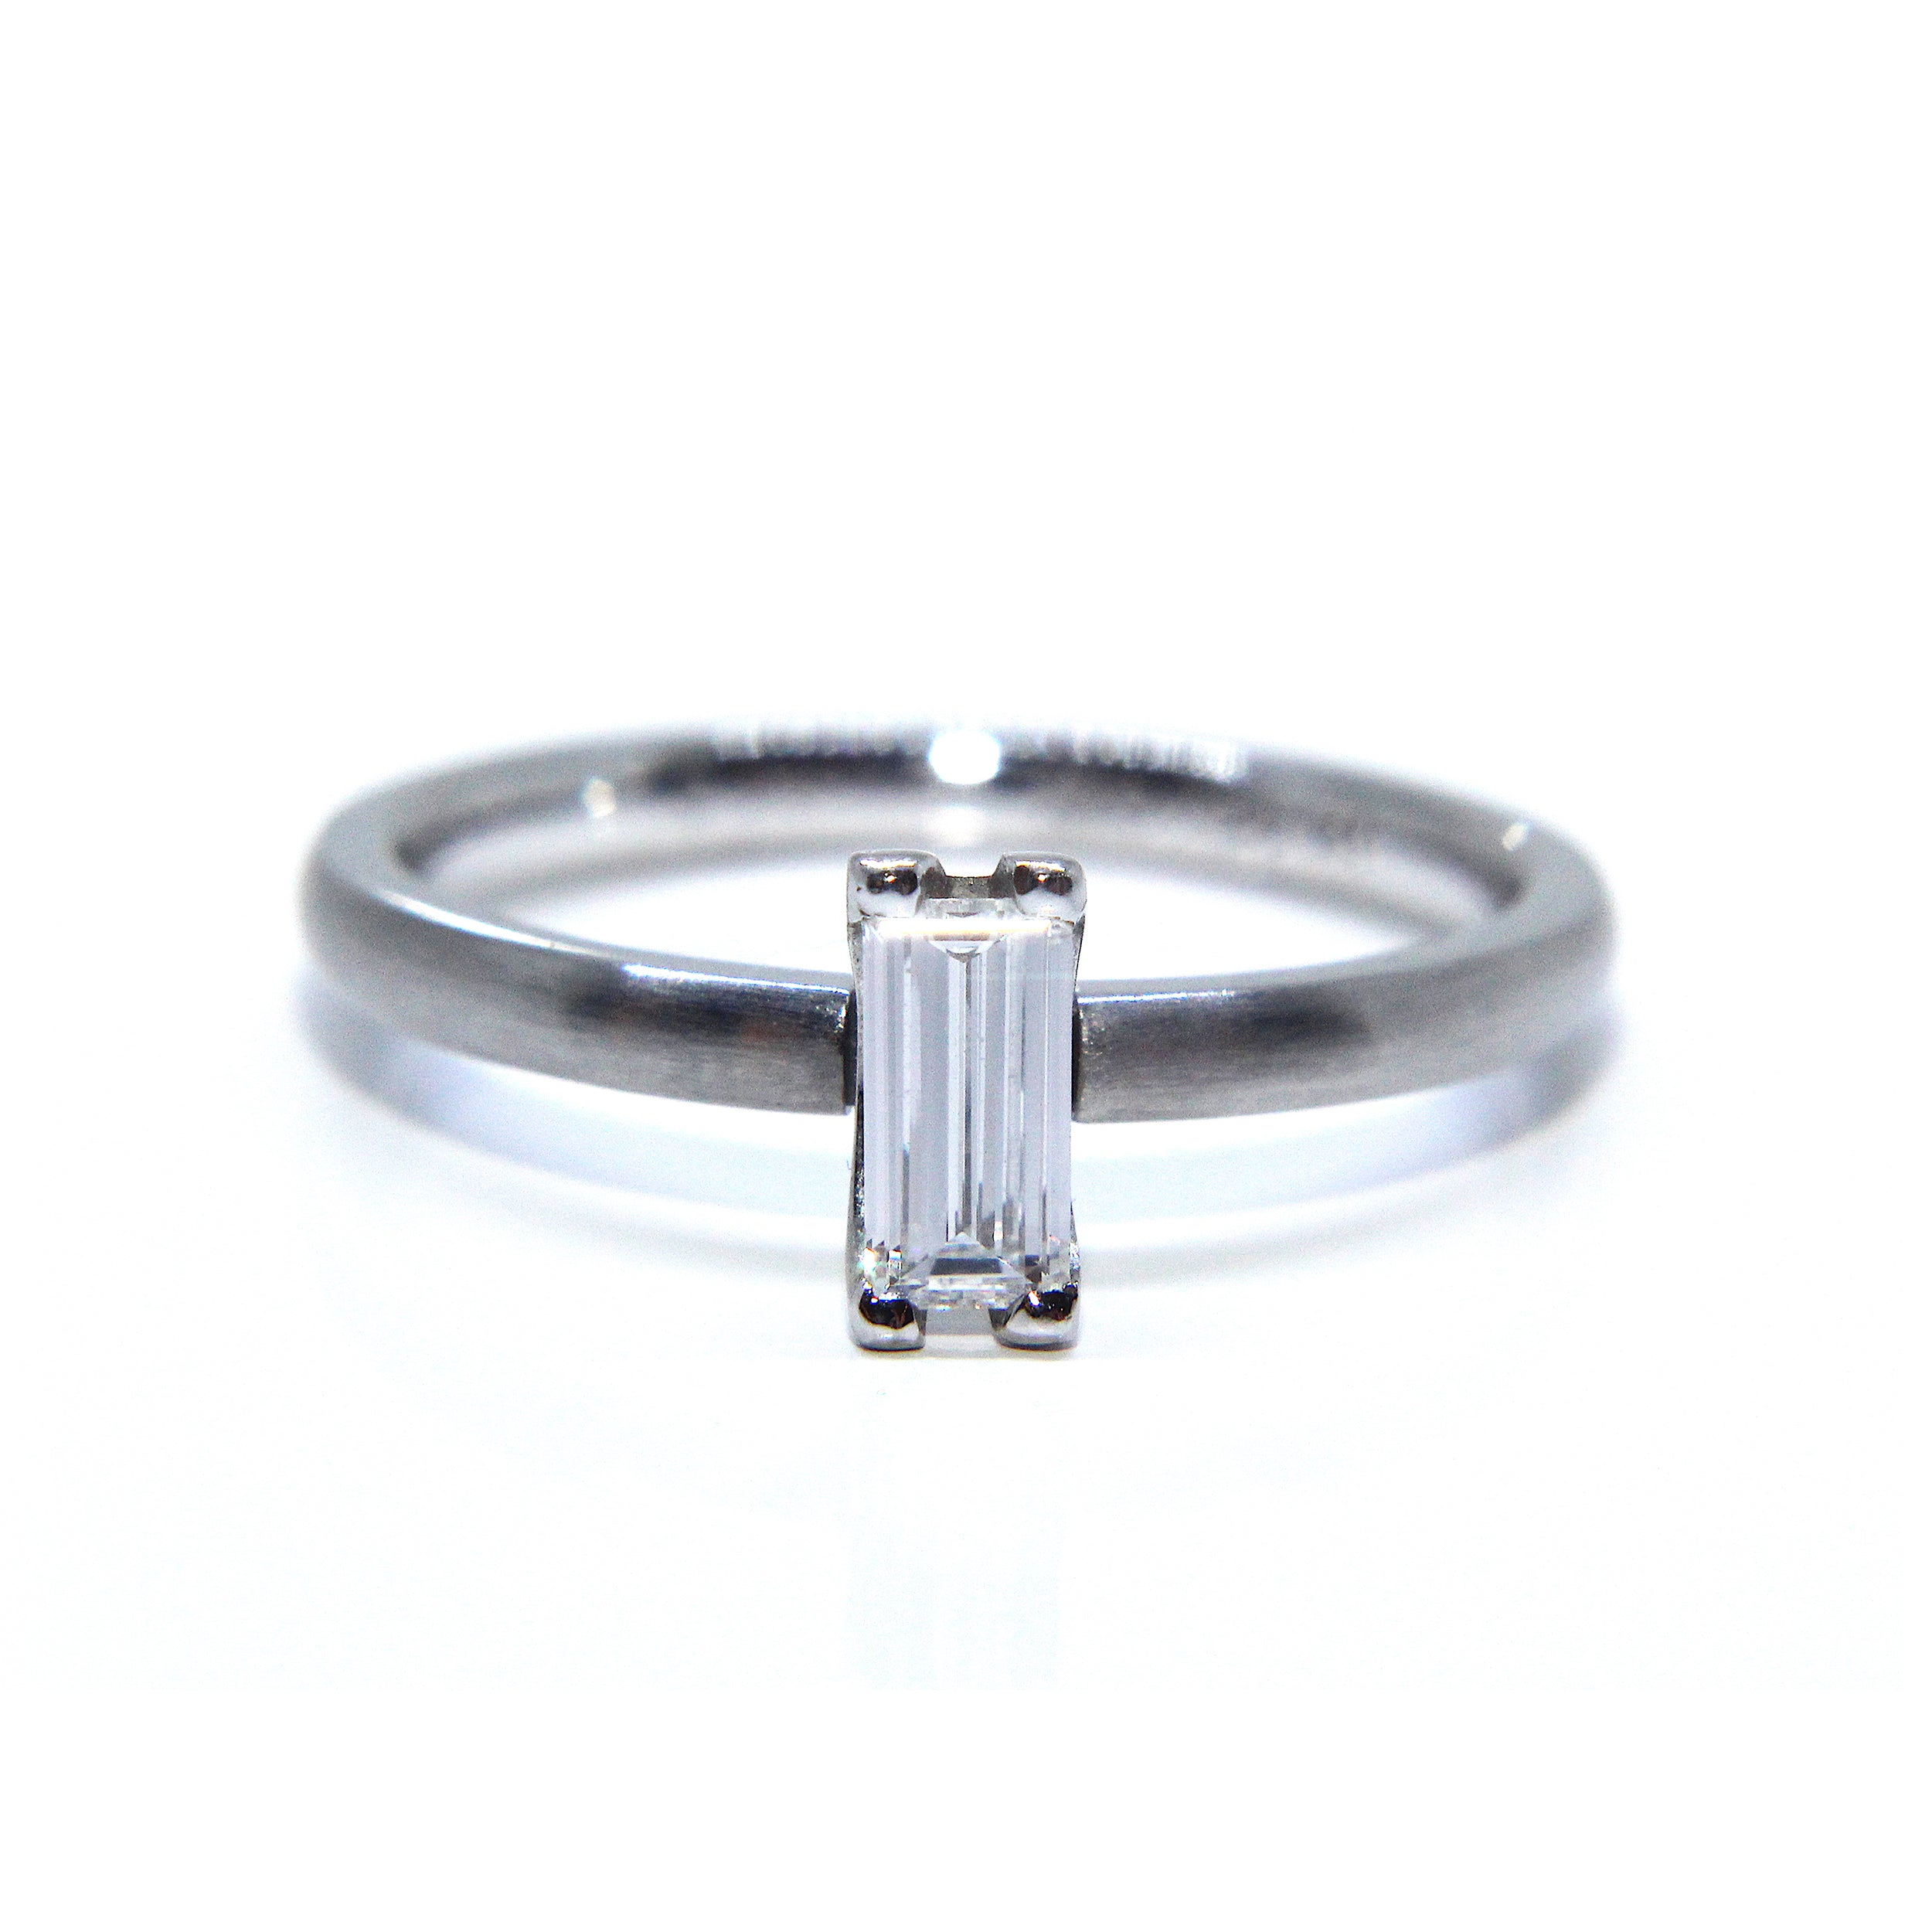 perfectly detailing diamond pin on in baguette this band fine rings presents geometric spin wedding classic wrapped bands fits with round eternity milgrain and a